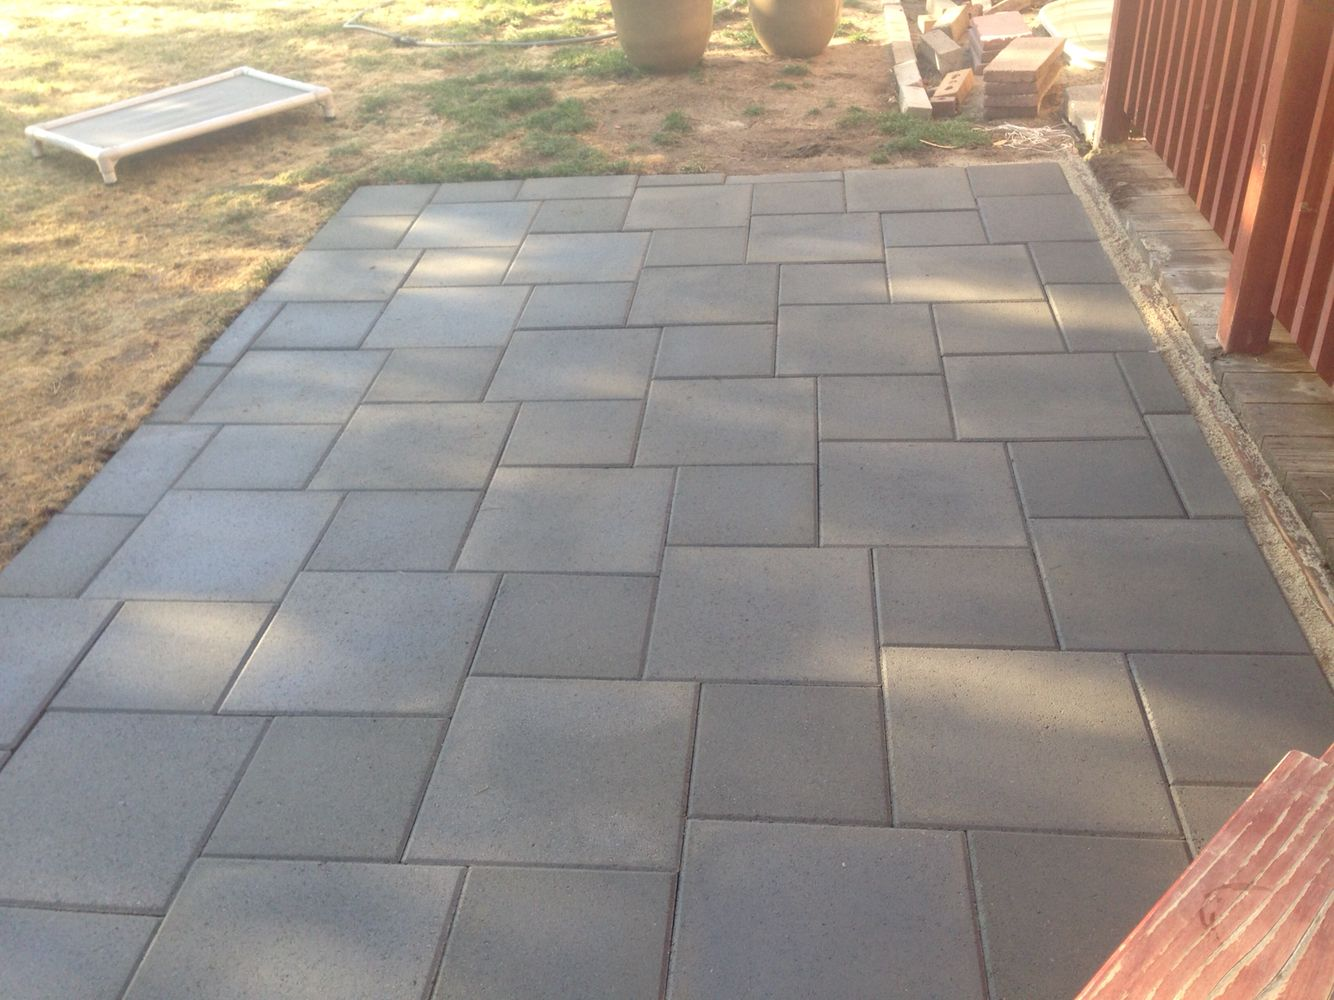 Patio of inexpensive concrete pavers  | Outdoors in 2018